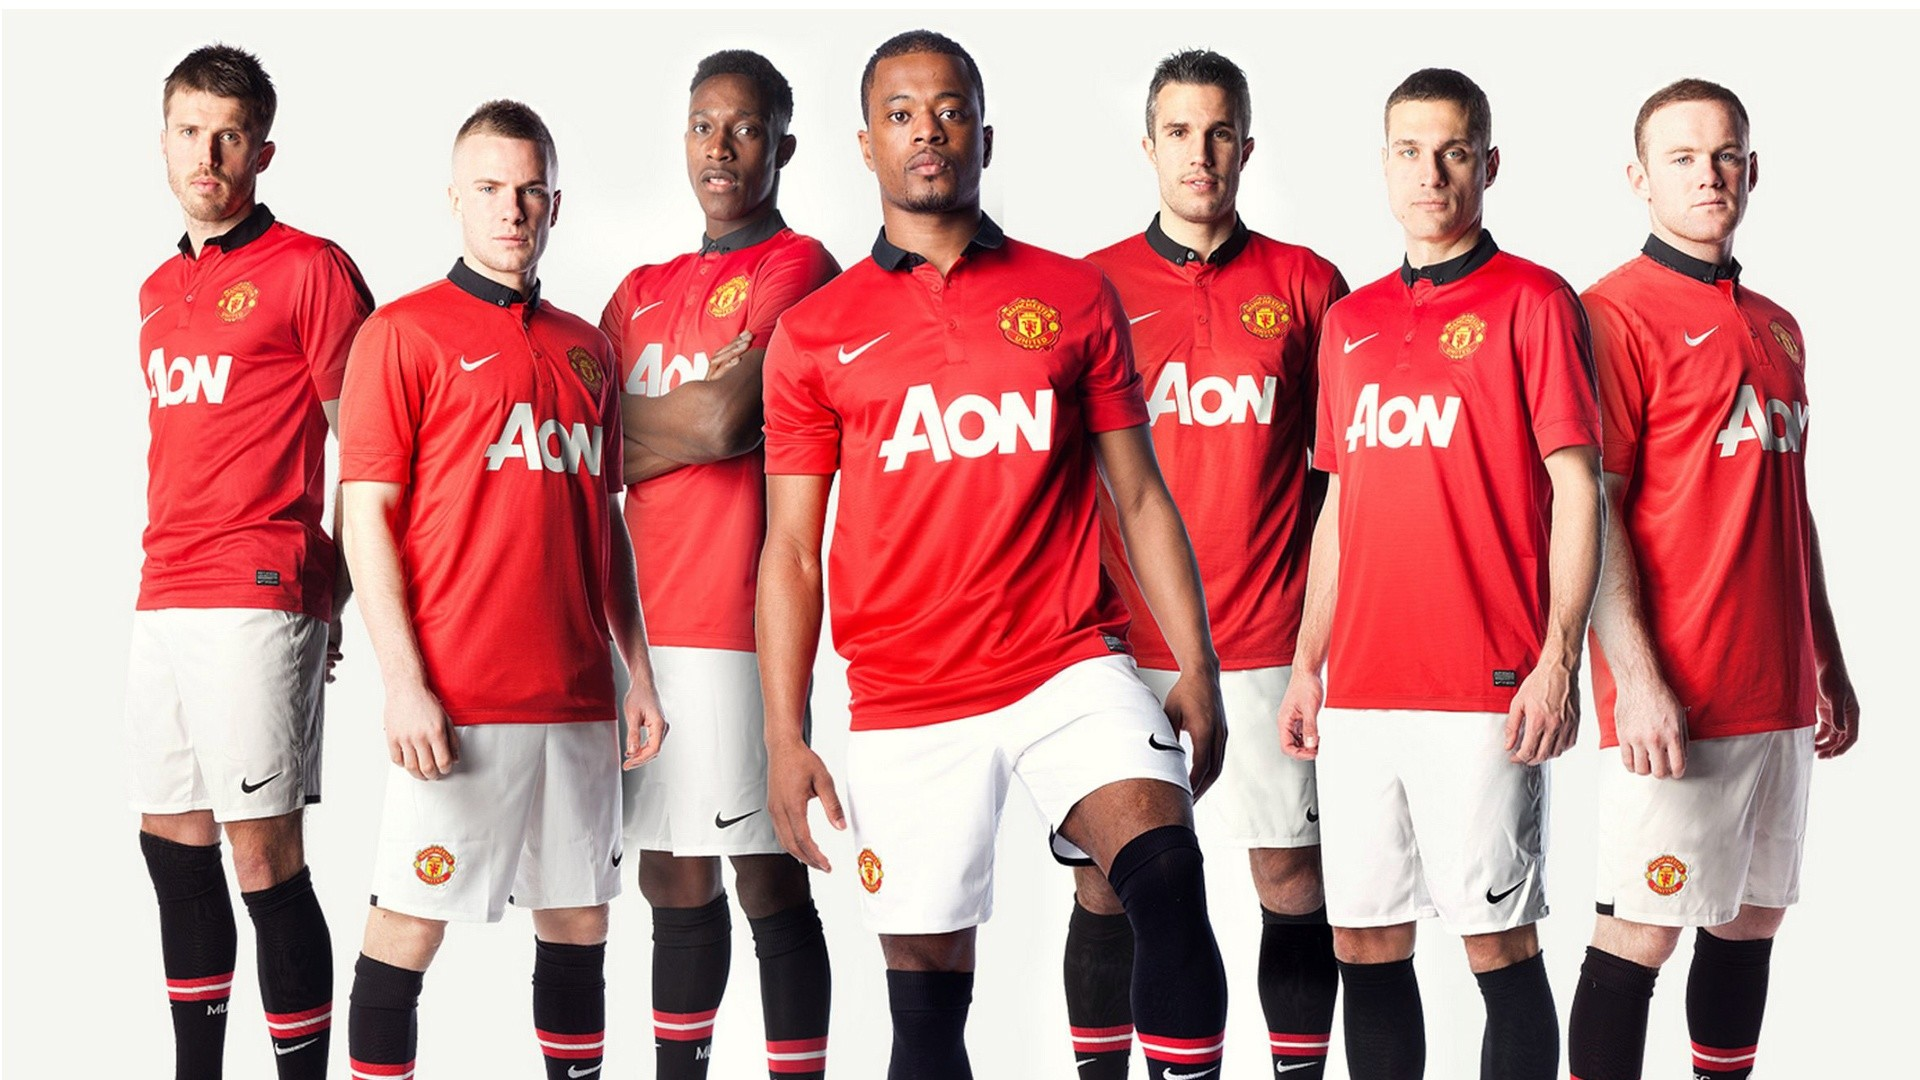 1920x1080 Manchester United Team 2013 Wallpapers